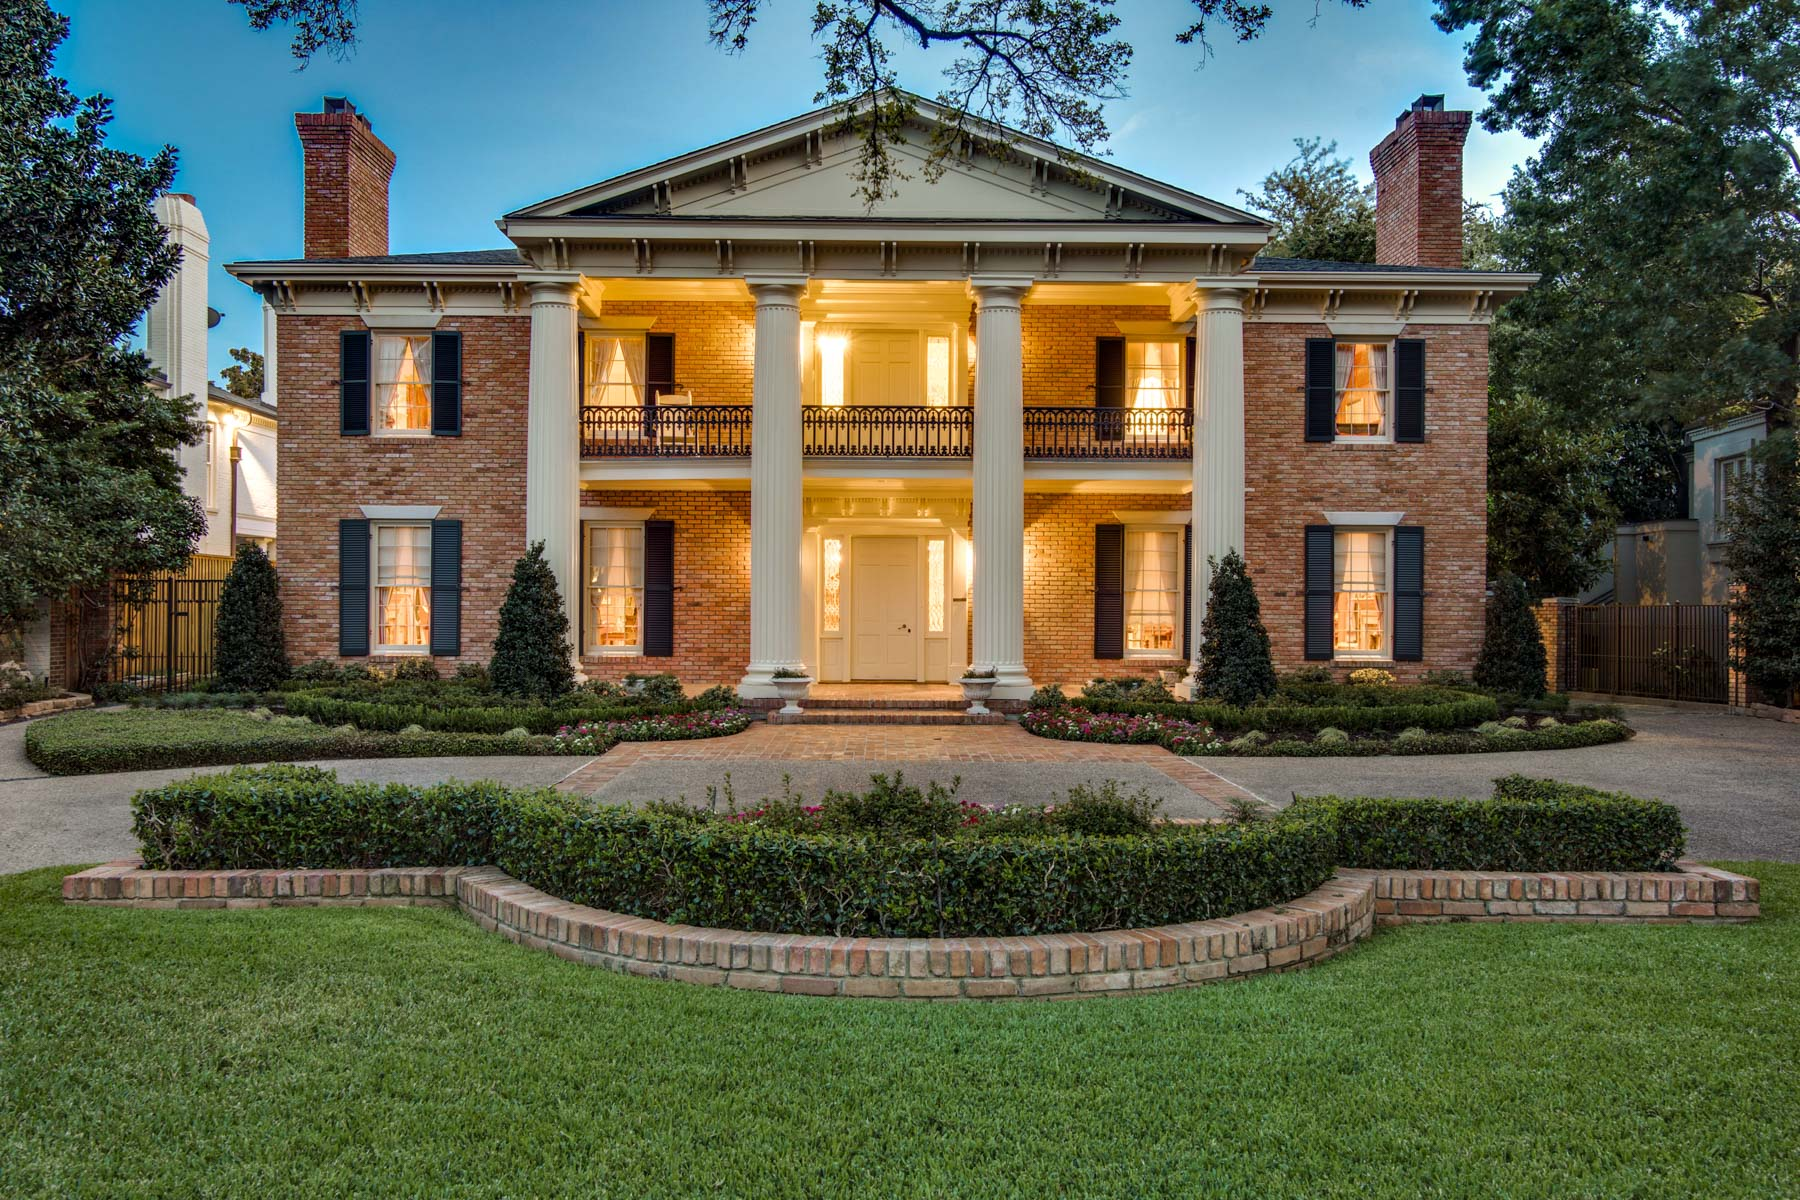 Villa per Vendita alle ore Old Highland Park, Greek Revival Masterpiece 4005 Gillon Ave Highland Park, Texas, 75205 Stati Uniti